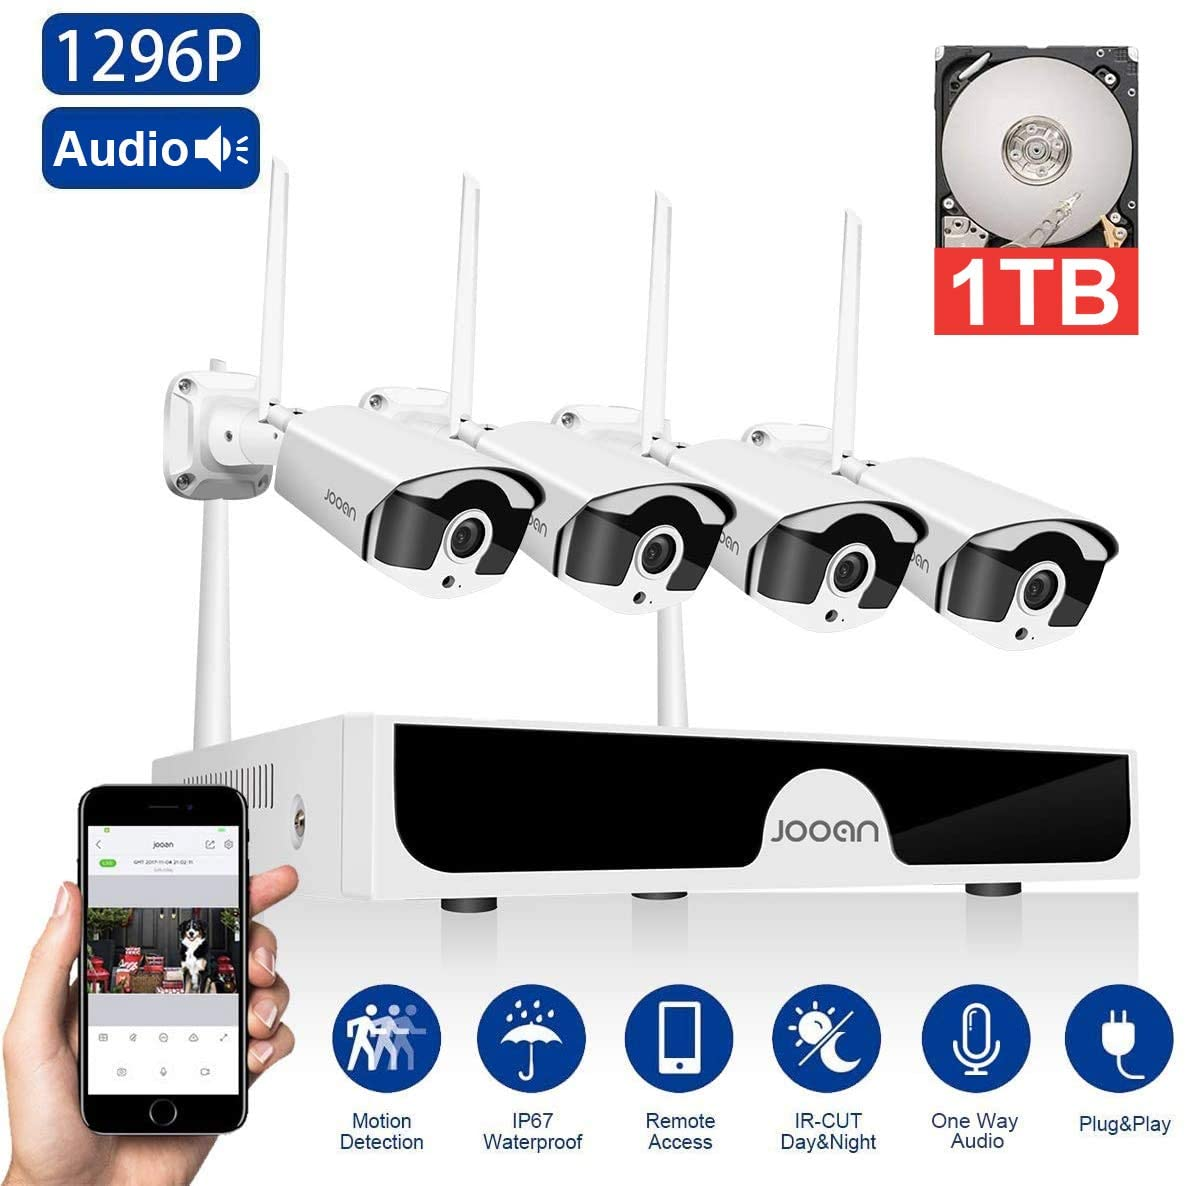 JOOAN 3MP Security Camera System Wireless,8-Channel NVR&4Pcs FHD 1296P(Clearer Than 1080P) Audio Record CCTV Cameras,Waterproof&Good Night Vision,Motion Alert(with 1TB Hard Drive)